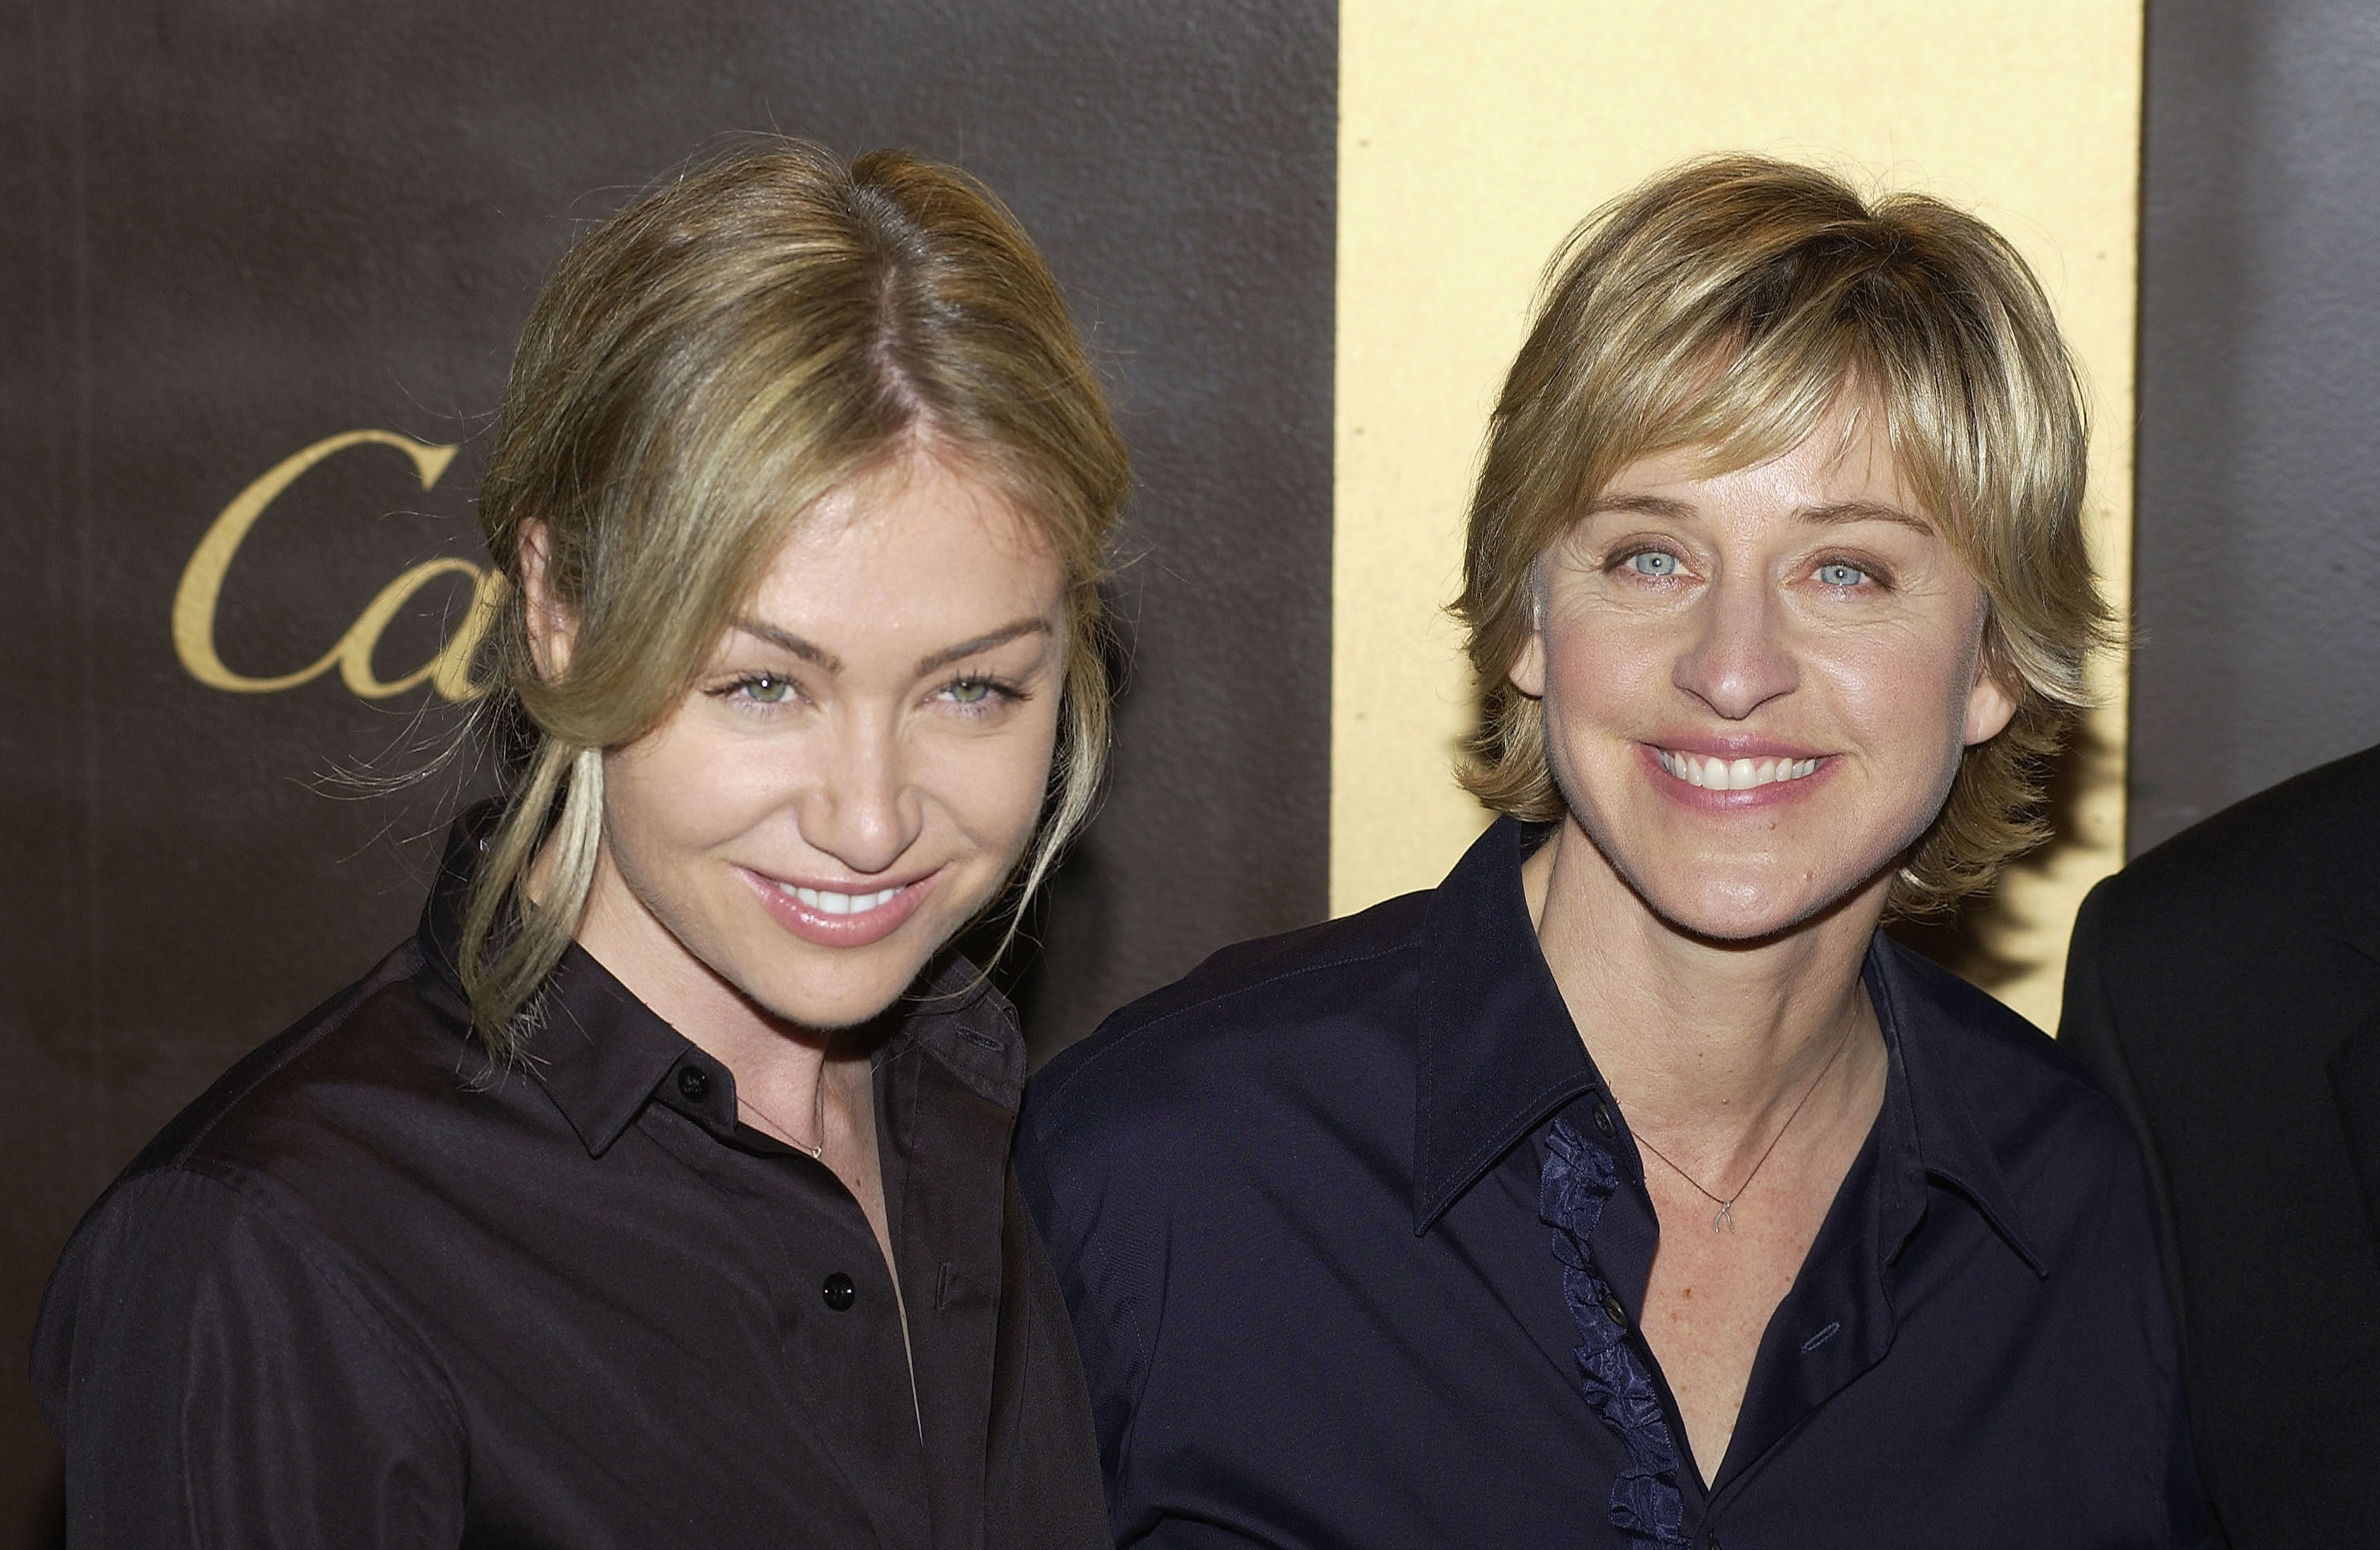 portia de rossi ellen HD Wallpaper